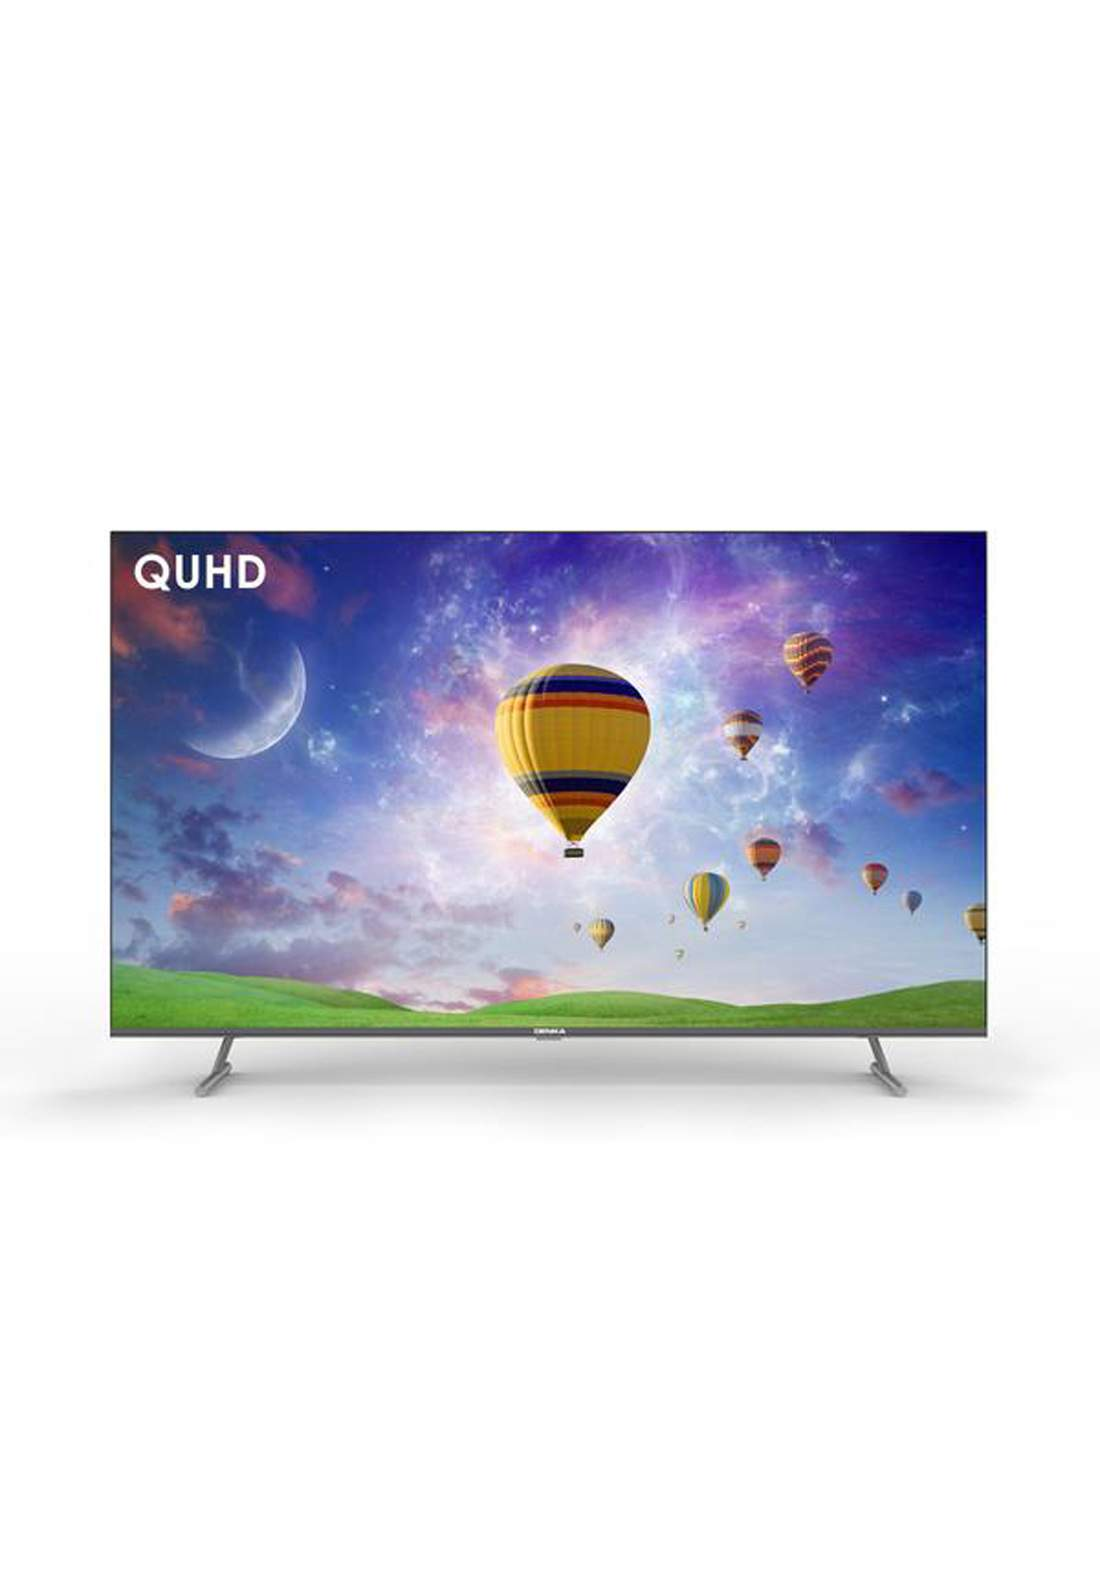 TCL UMS-50USMLED UM Android Quhd 50 inches شاشة من تي سي ال